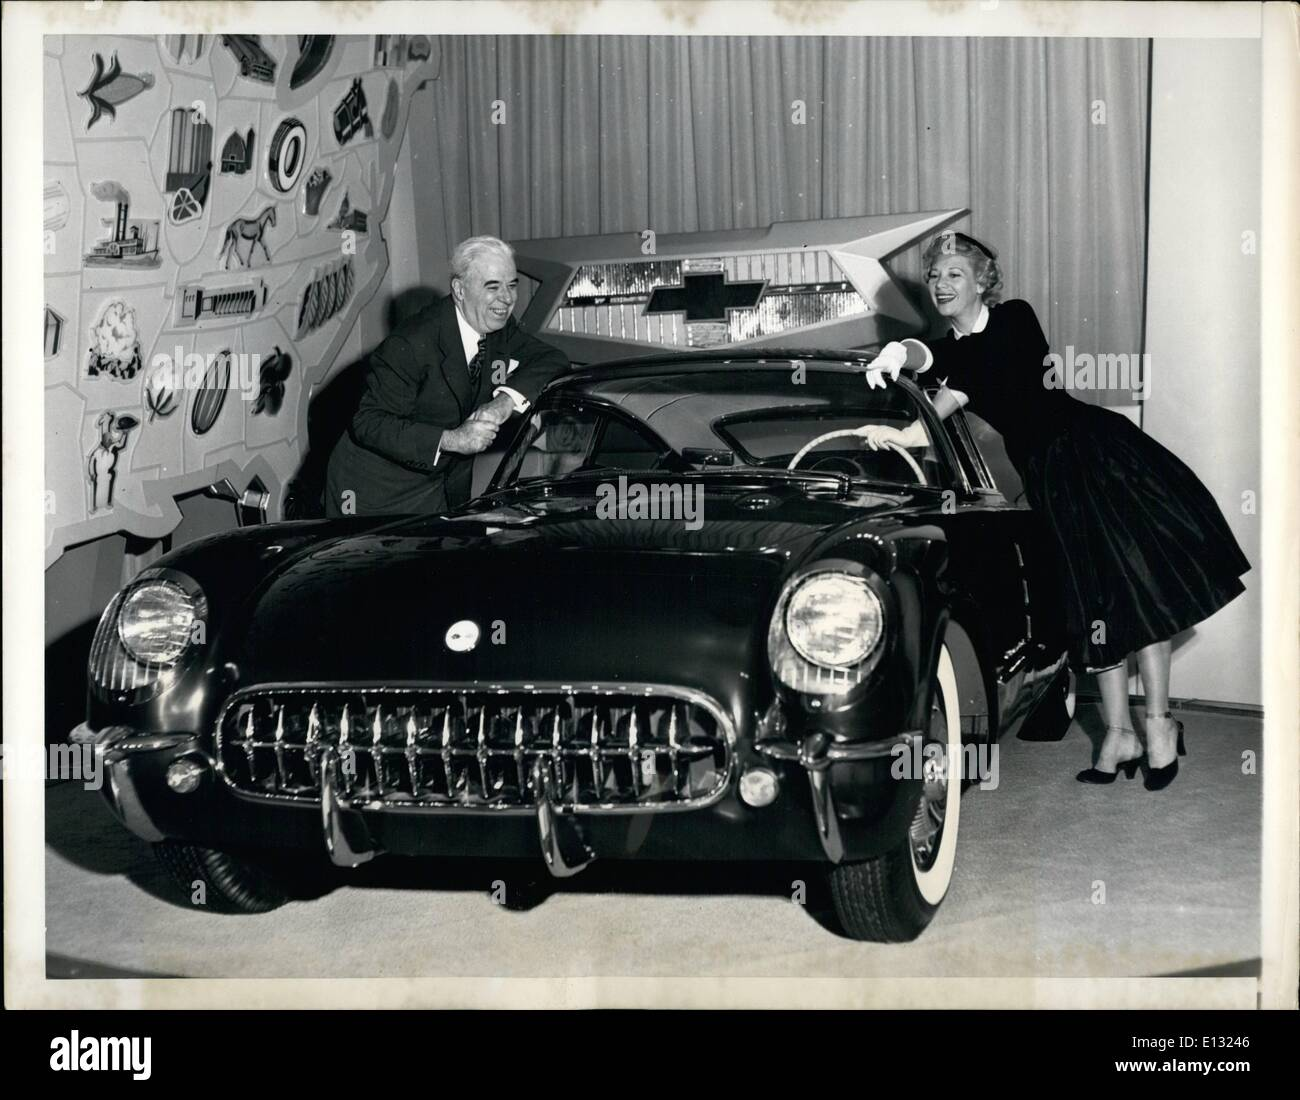 Feb. 26, 2012 - General Motors Motorama of 1954 opened in New York at the Waldorf Astoria with H.H. Curtice, GM President, who announced a one billion dollar GM expansion program, as host. Attending were Dinah Shore, shown here with T.H. Keating, General Manager of the Chevrolet Division, examining Chevrolet's Corvette ''Corvair'' coupé one of the 11 ''dream'' cars introduced at the show. - Stock Image